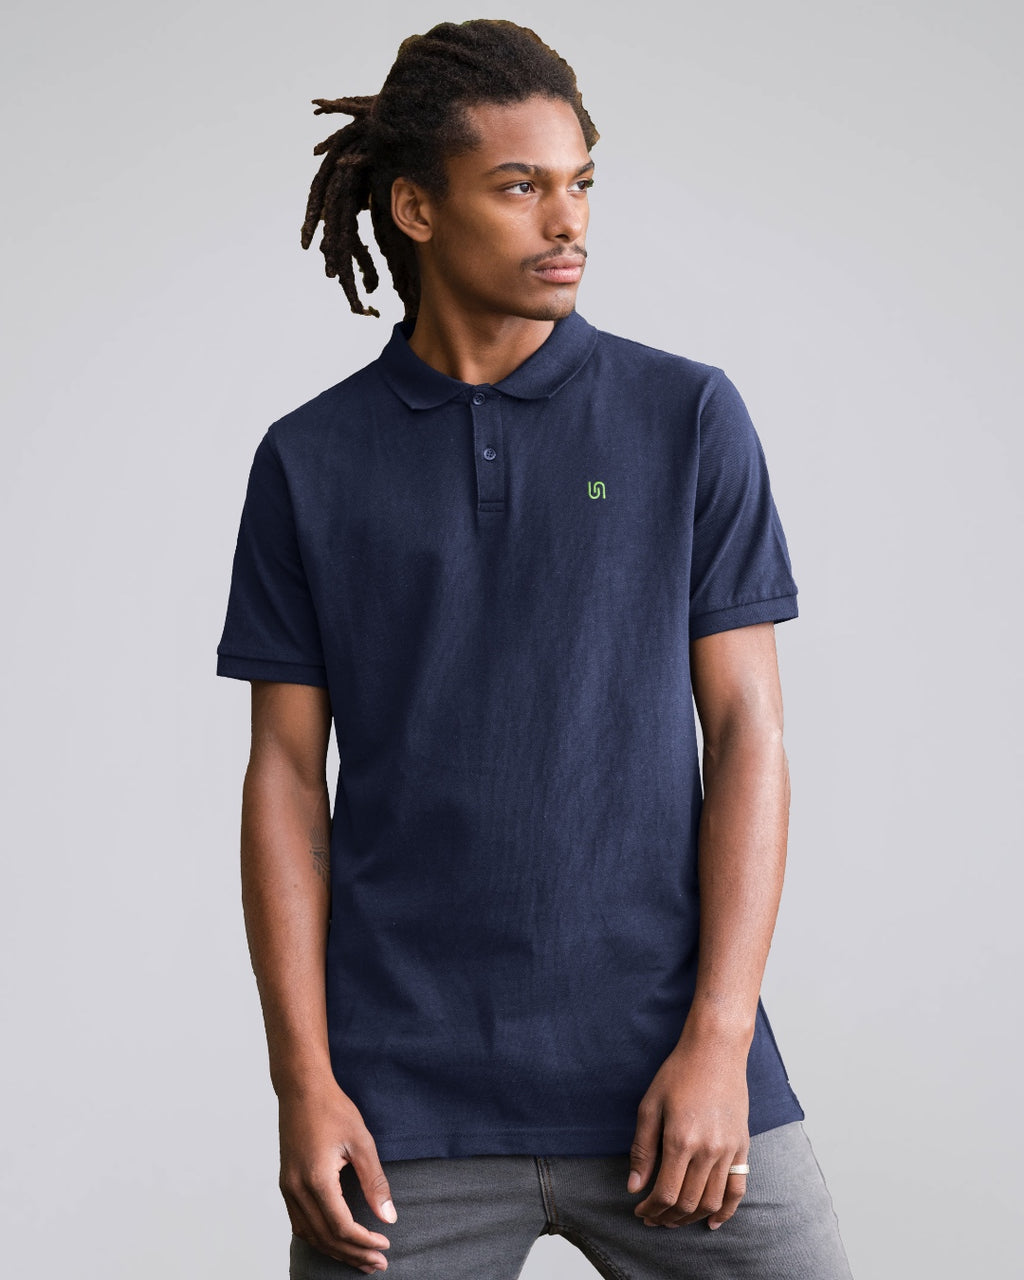 The Nut sustainable, vegan and plastic free polo shirt - colour: navy